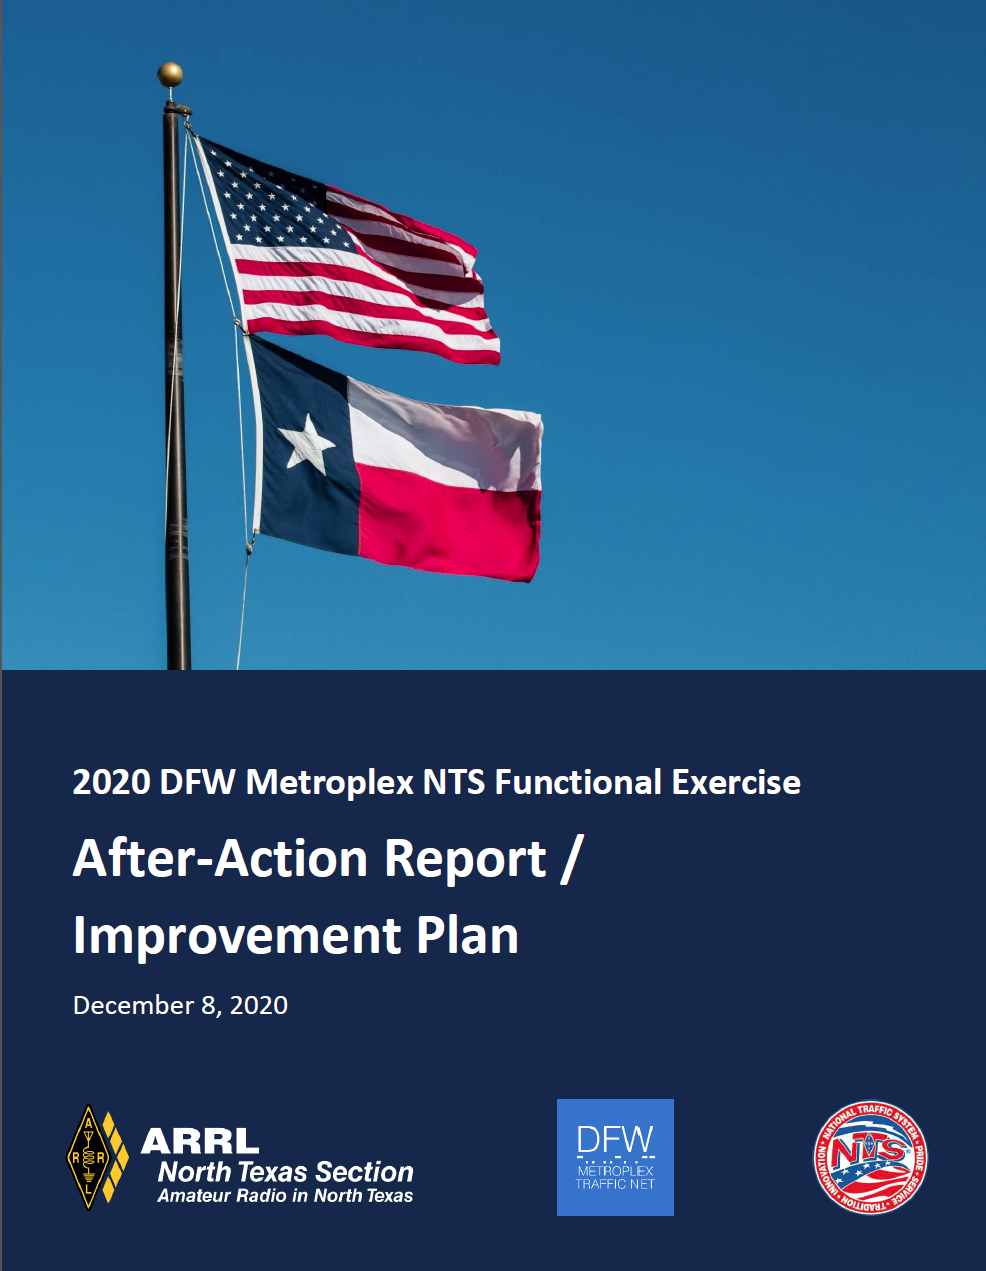 Download the 2020 DFW Metroplex NTS Functional Exercise After Action Report / Improvement Plan